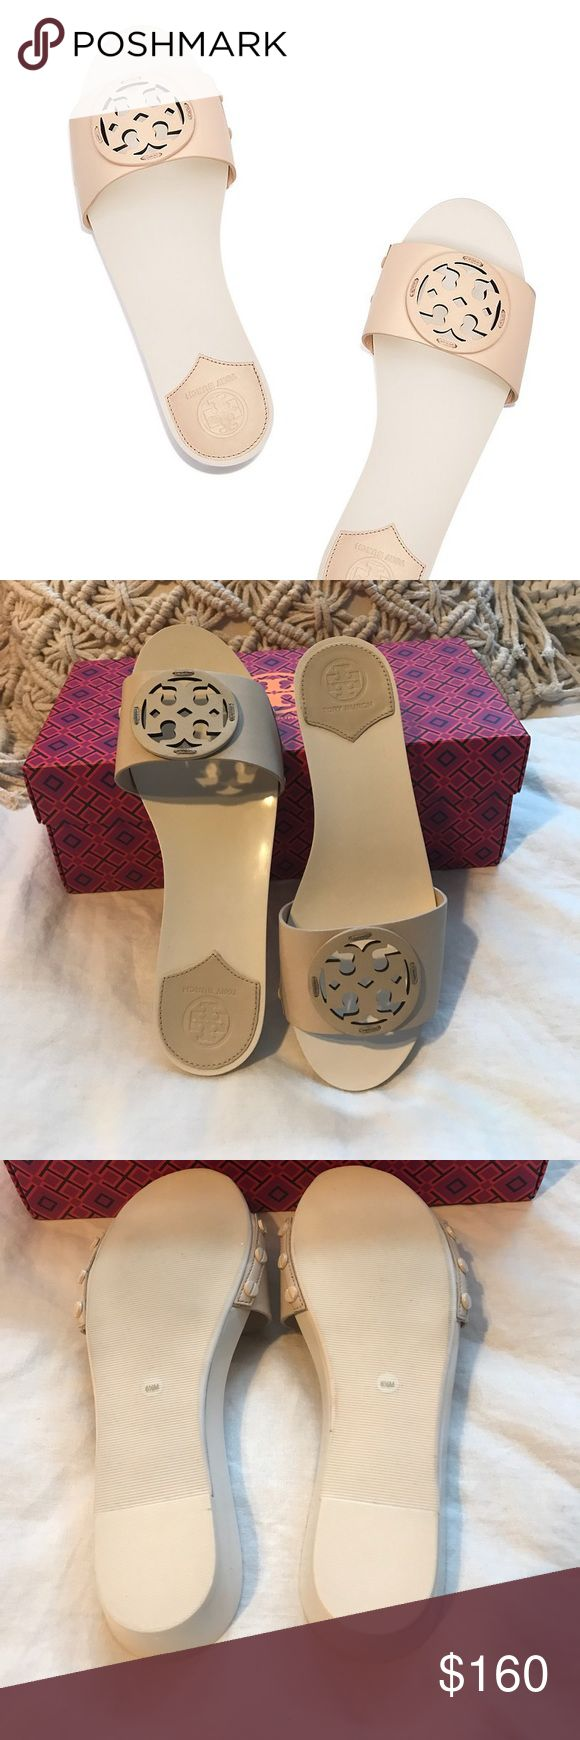 """TORY BURCH MILLER SLIDE 100% Authentic leather miller slide. Color is """"dulce de leche"""" Comes with original box                                                   1.18"""" (3 cm) lacquered wedge heel and platform Napa leather upper Cut-out double-T logo Powder-coated nailhead rivets Partial leather lining Rubber sole Tory Burch Shoes Sandals"""